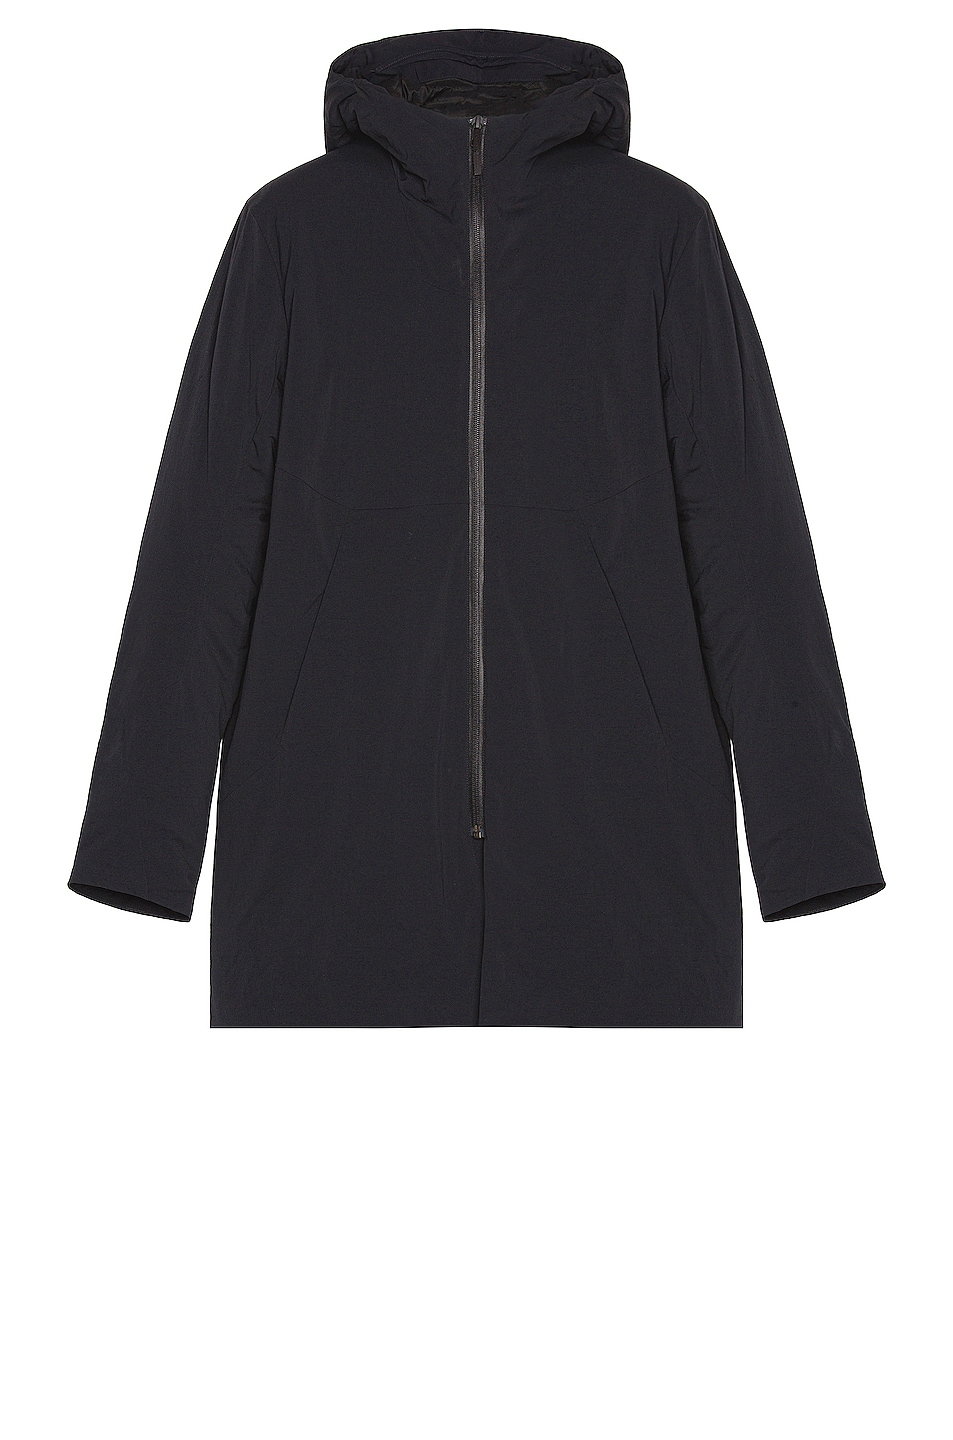 Image 1 of Veilance Mionn IS Coat in Black